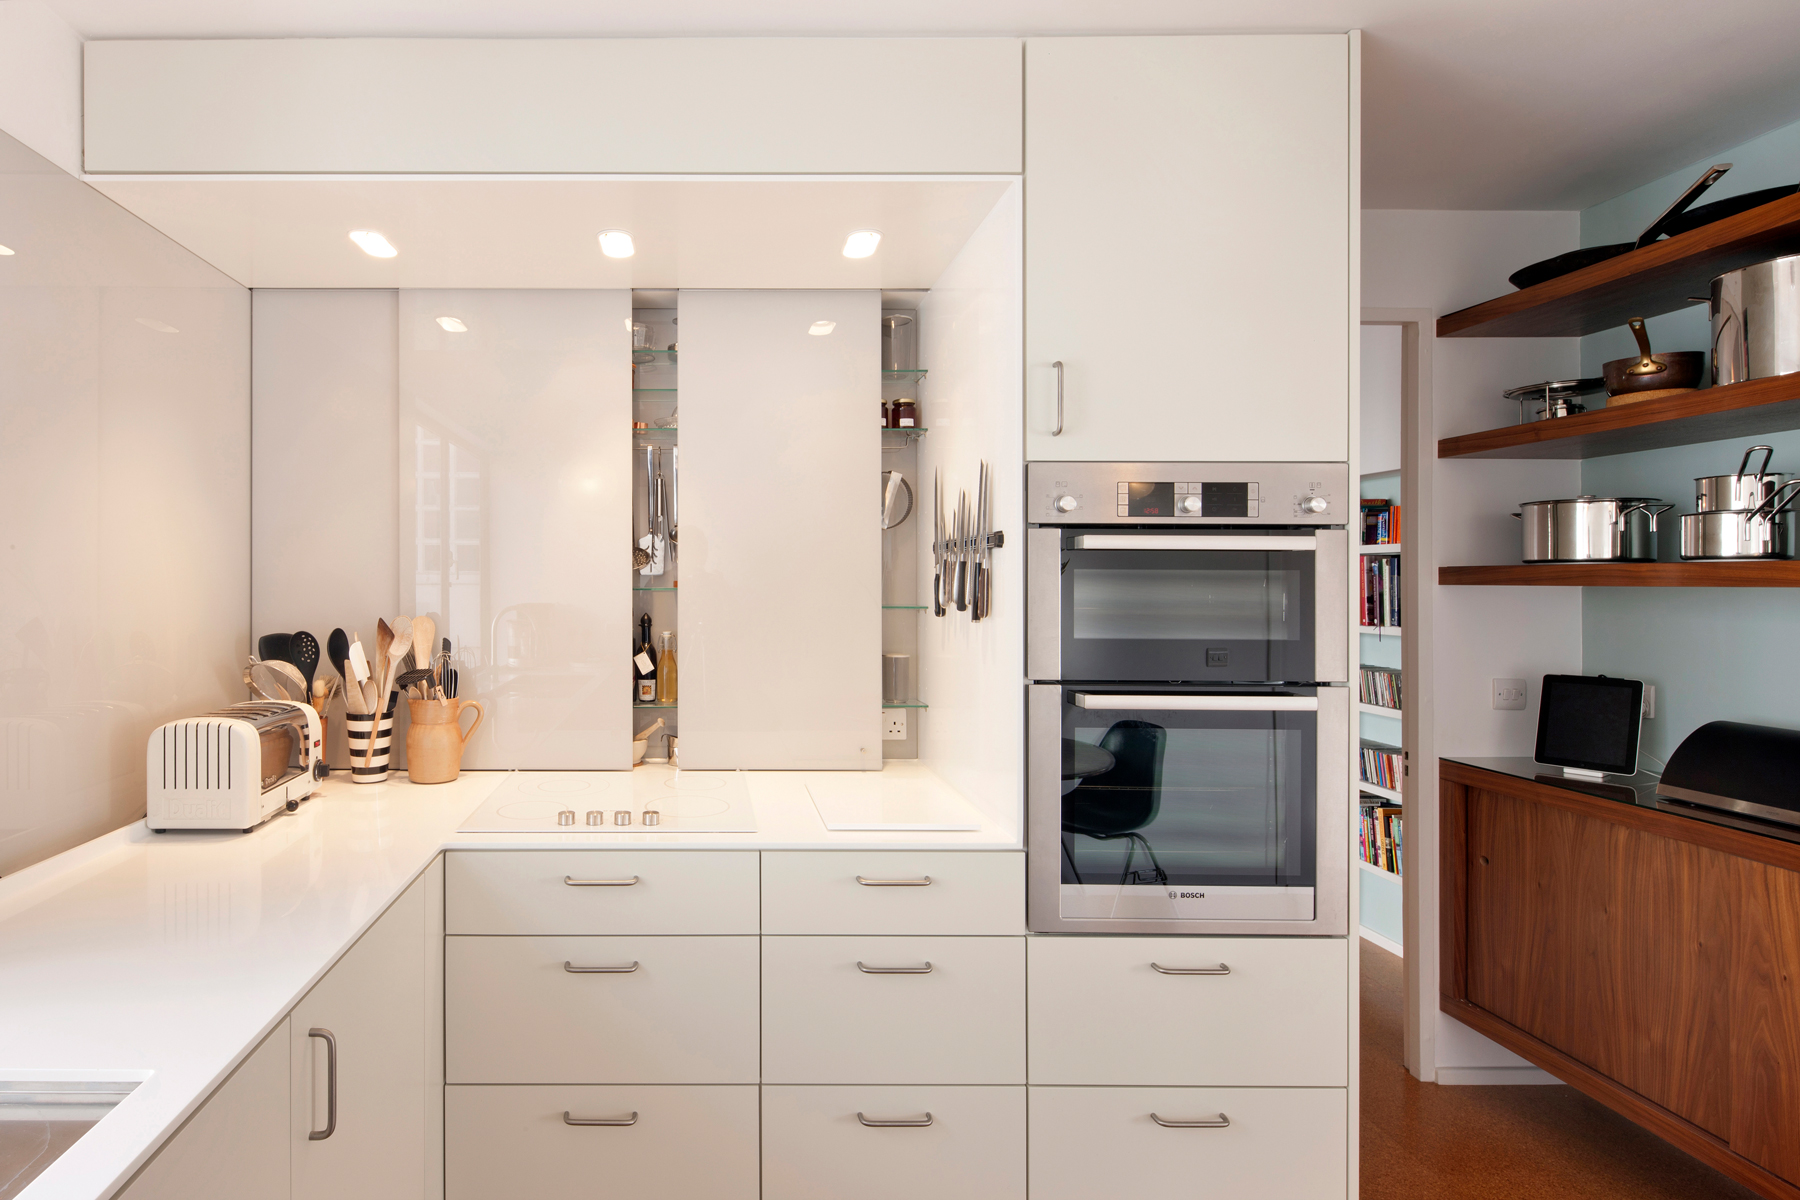 The Appliance Garage Is the Clutter-Hiding Kitchen Trick You've Been